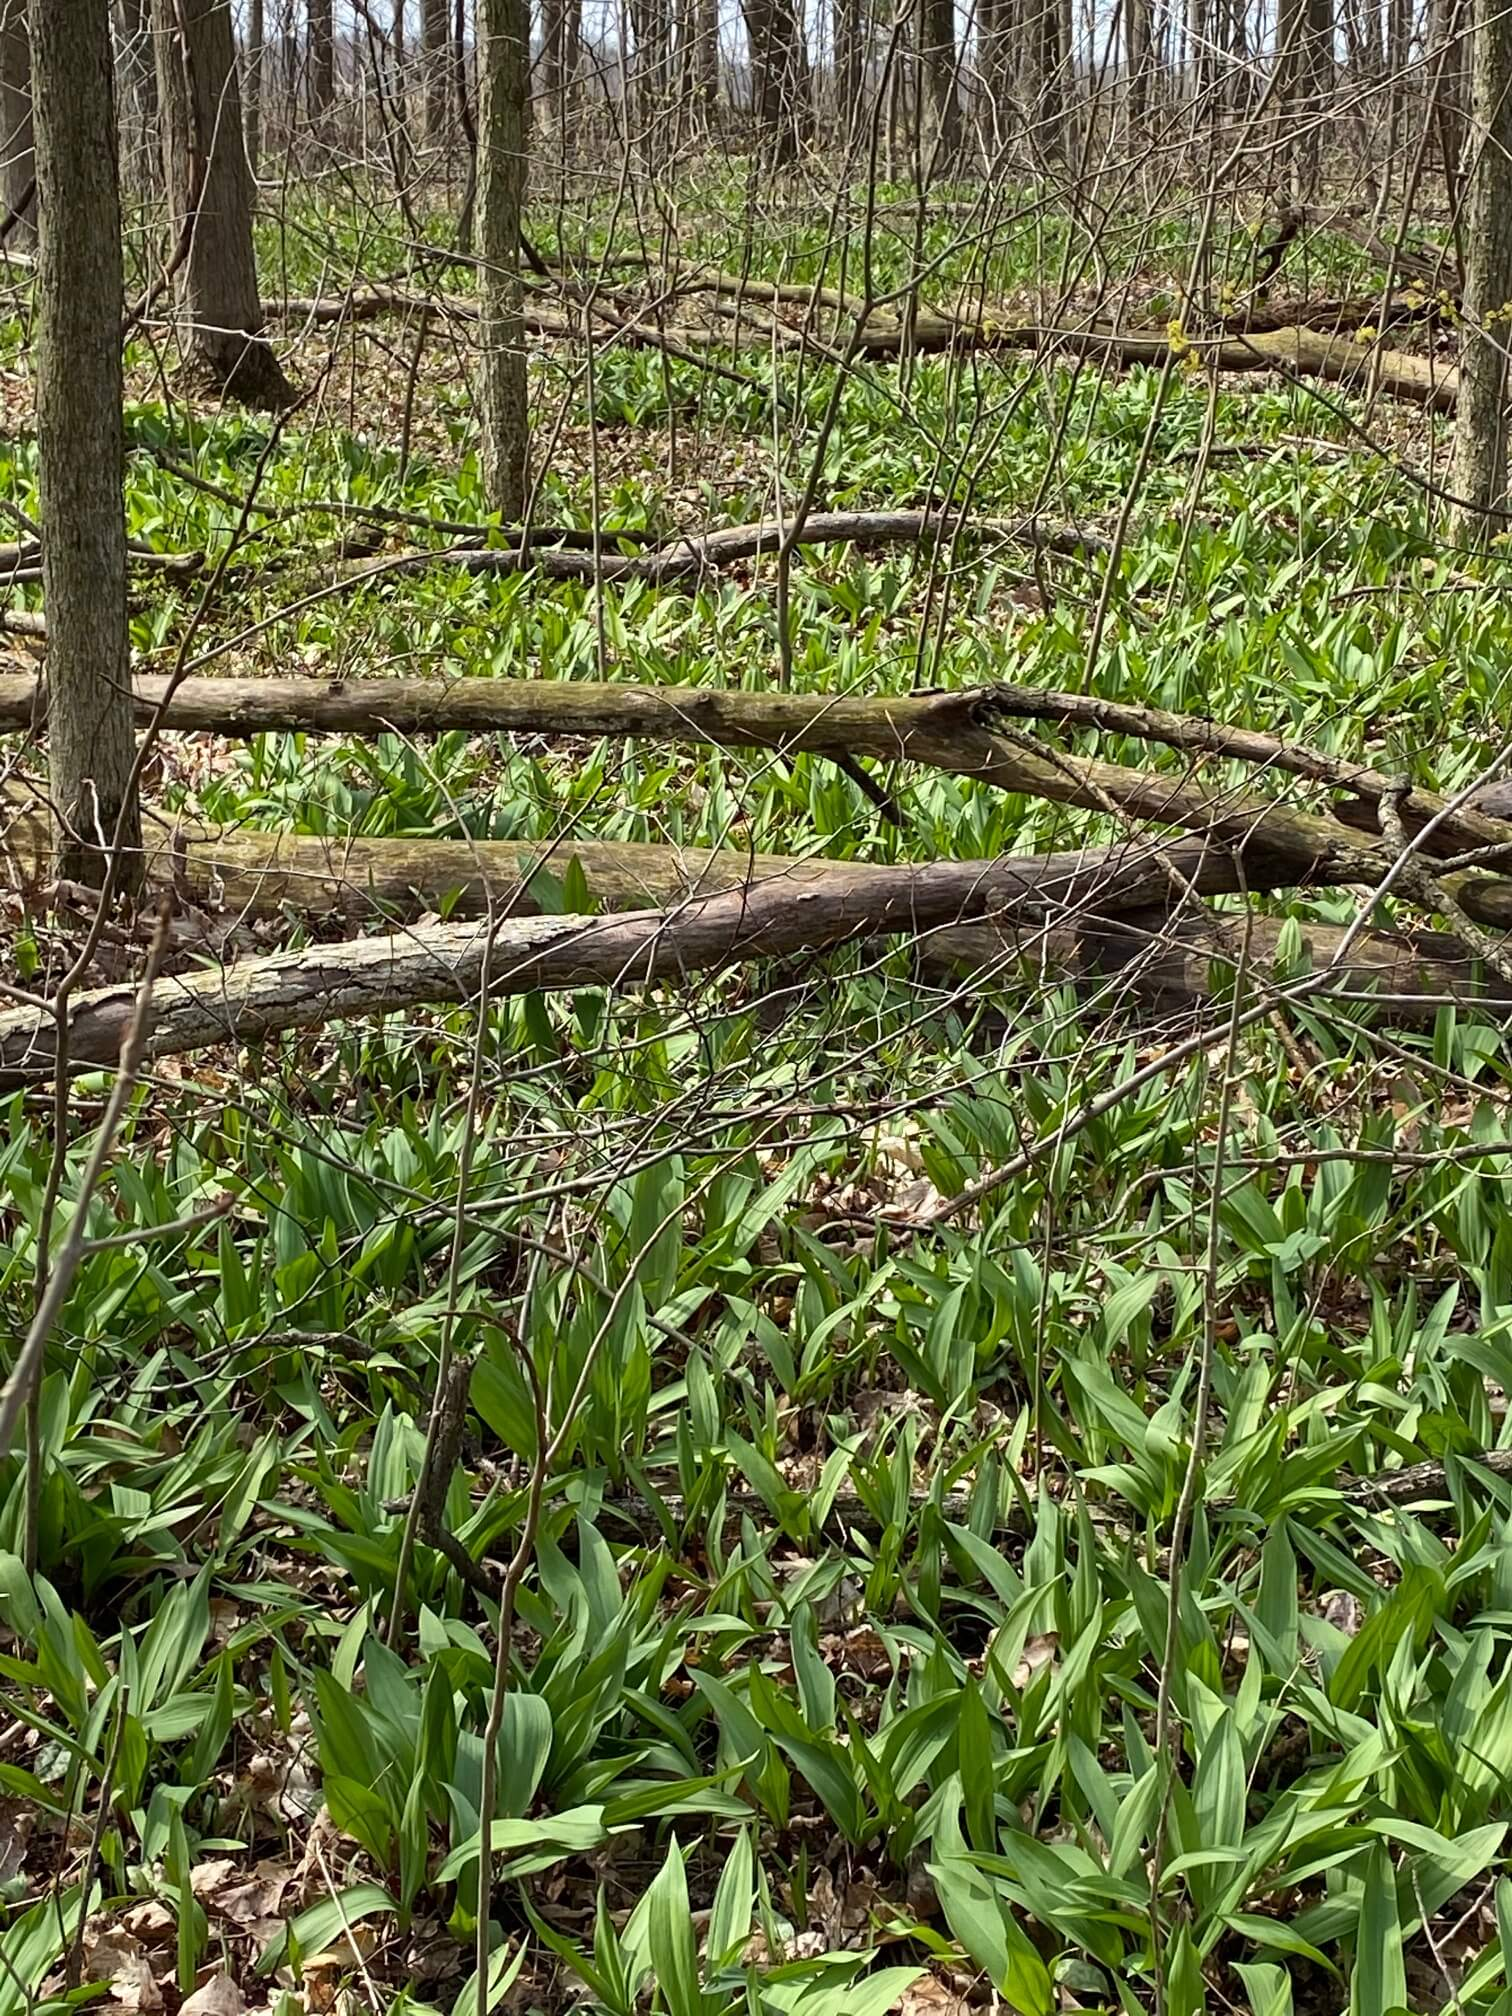 Ramps, or wild onions, growing wild in the woods at The Castle